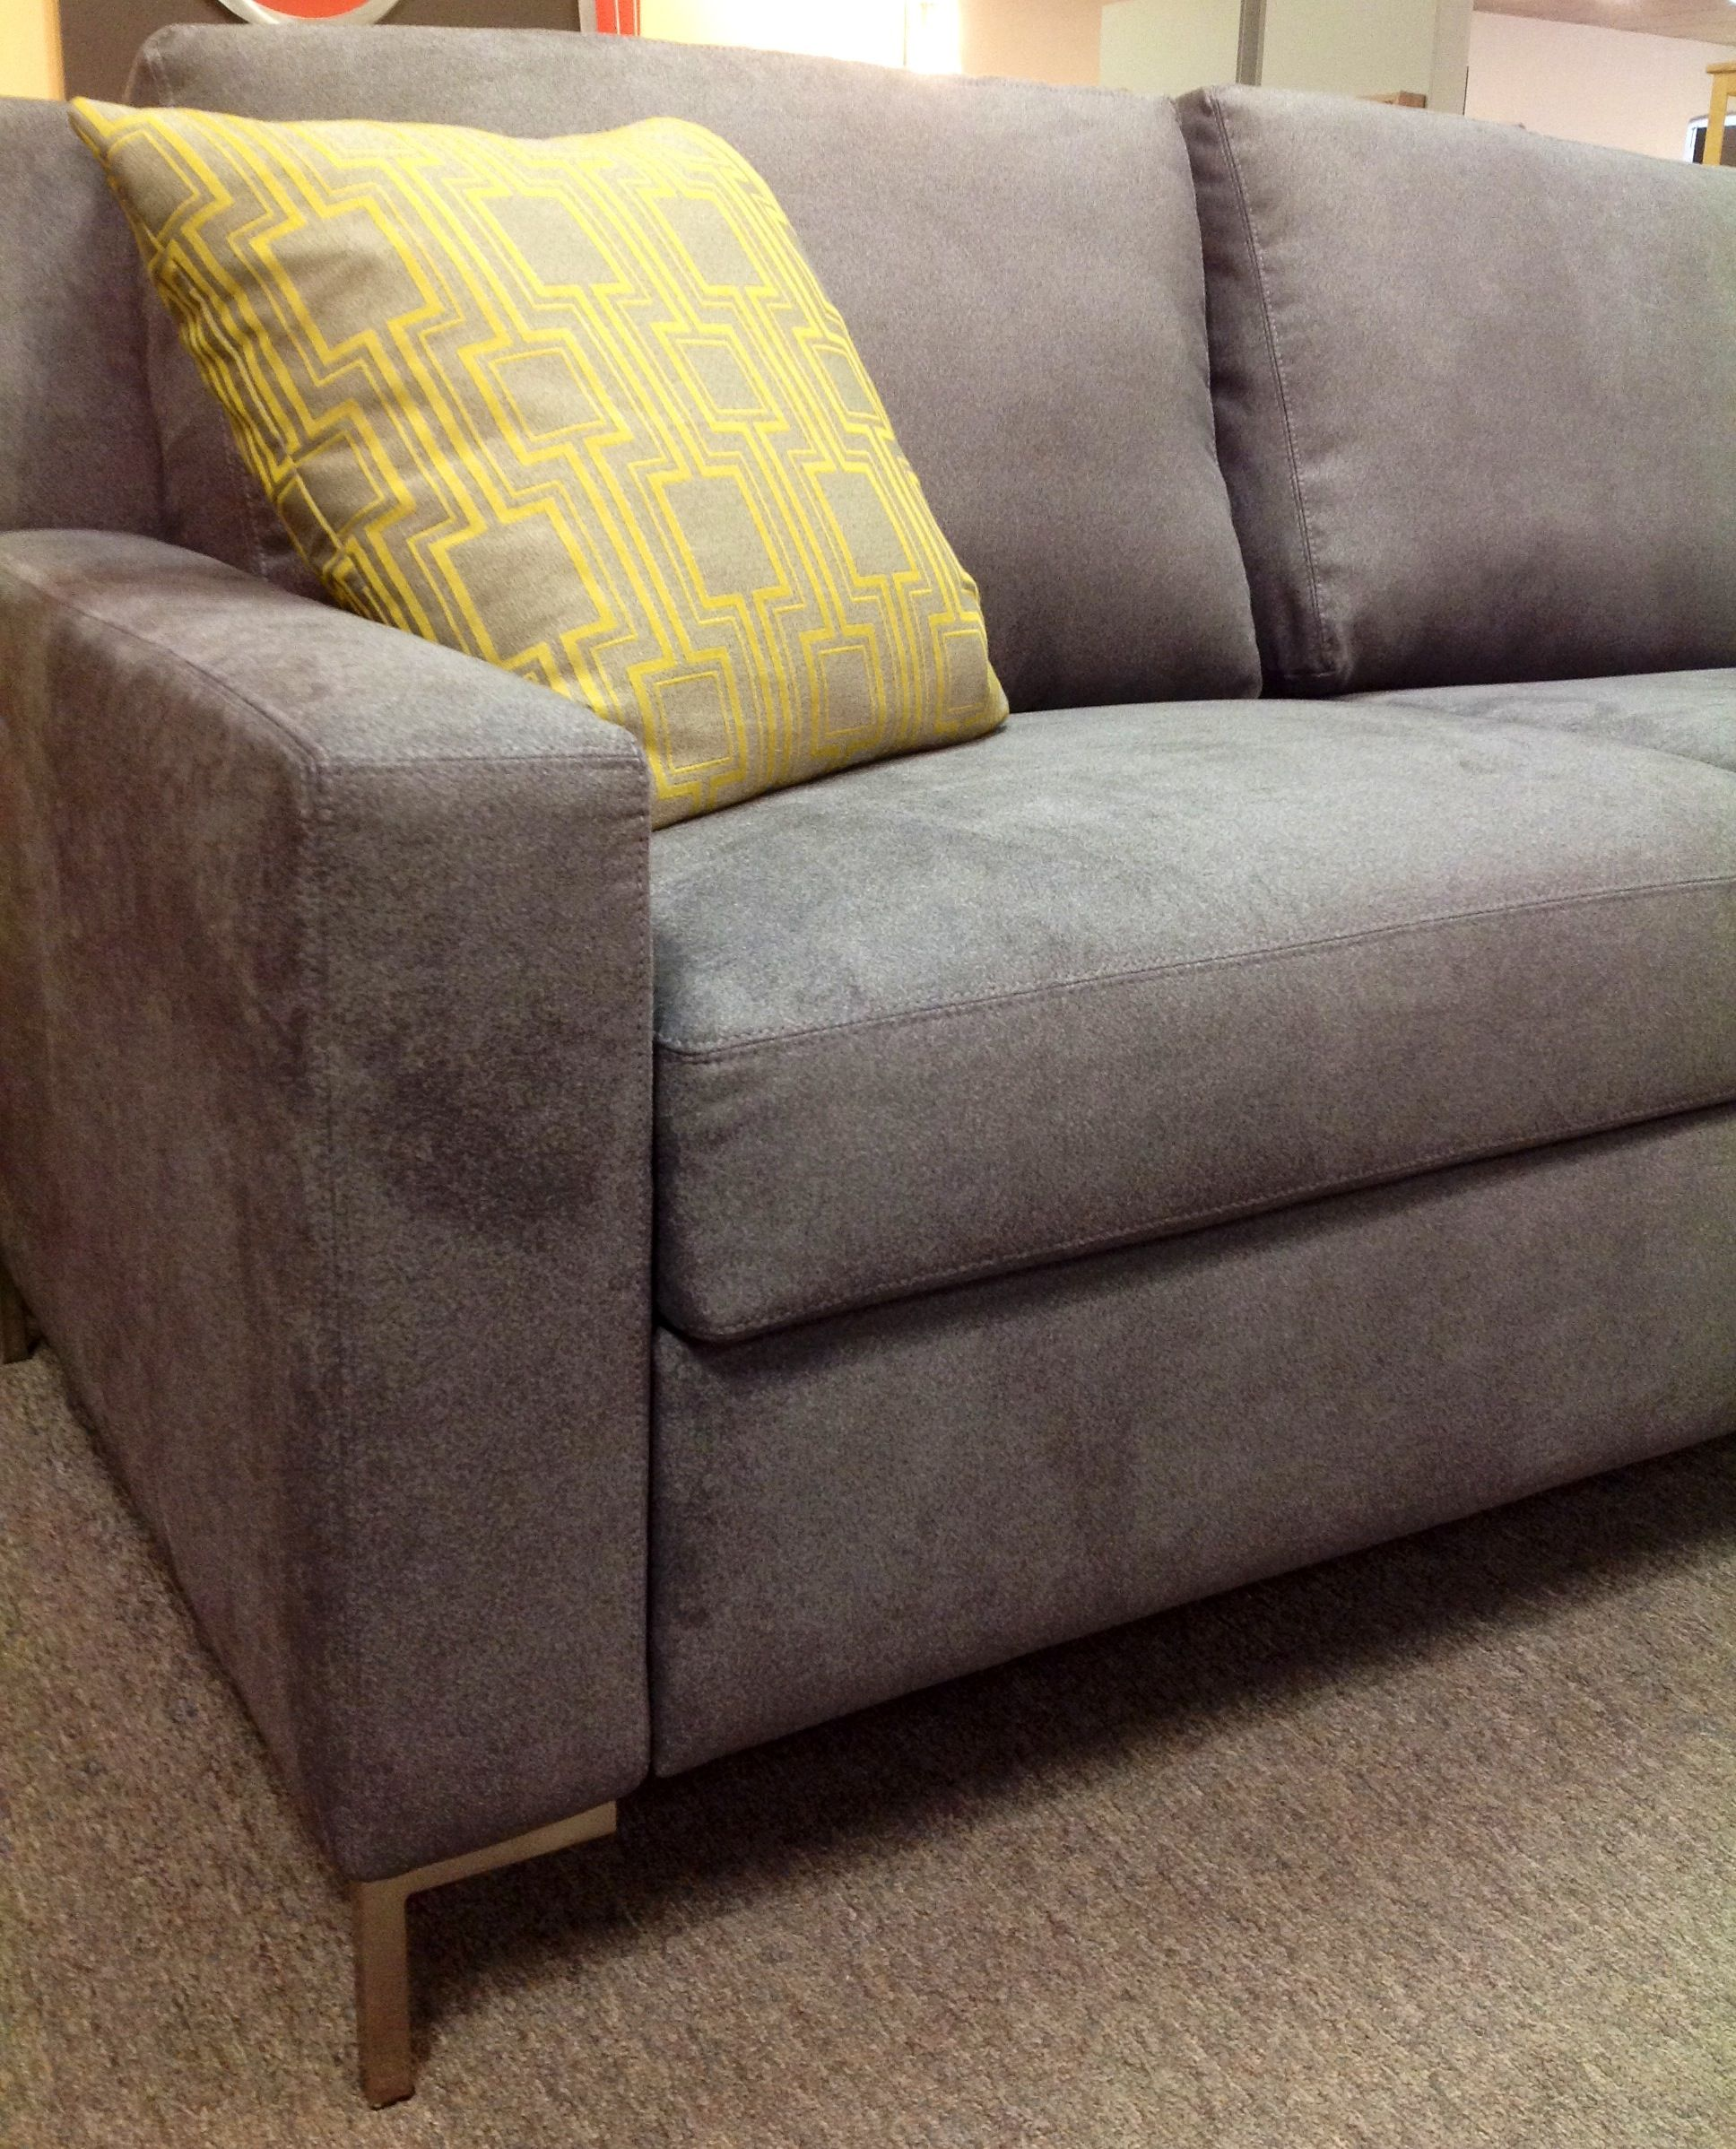 Magnificent Brynlee Queen Sleeper Suedelife Heathered Flannel Beatyapartments Chair Design Images Beatyapartmentscom